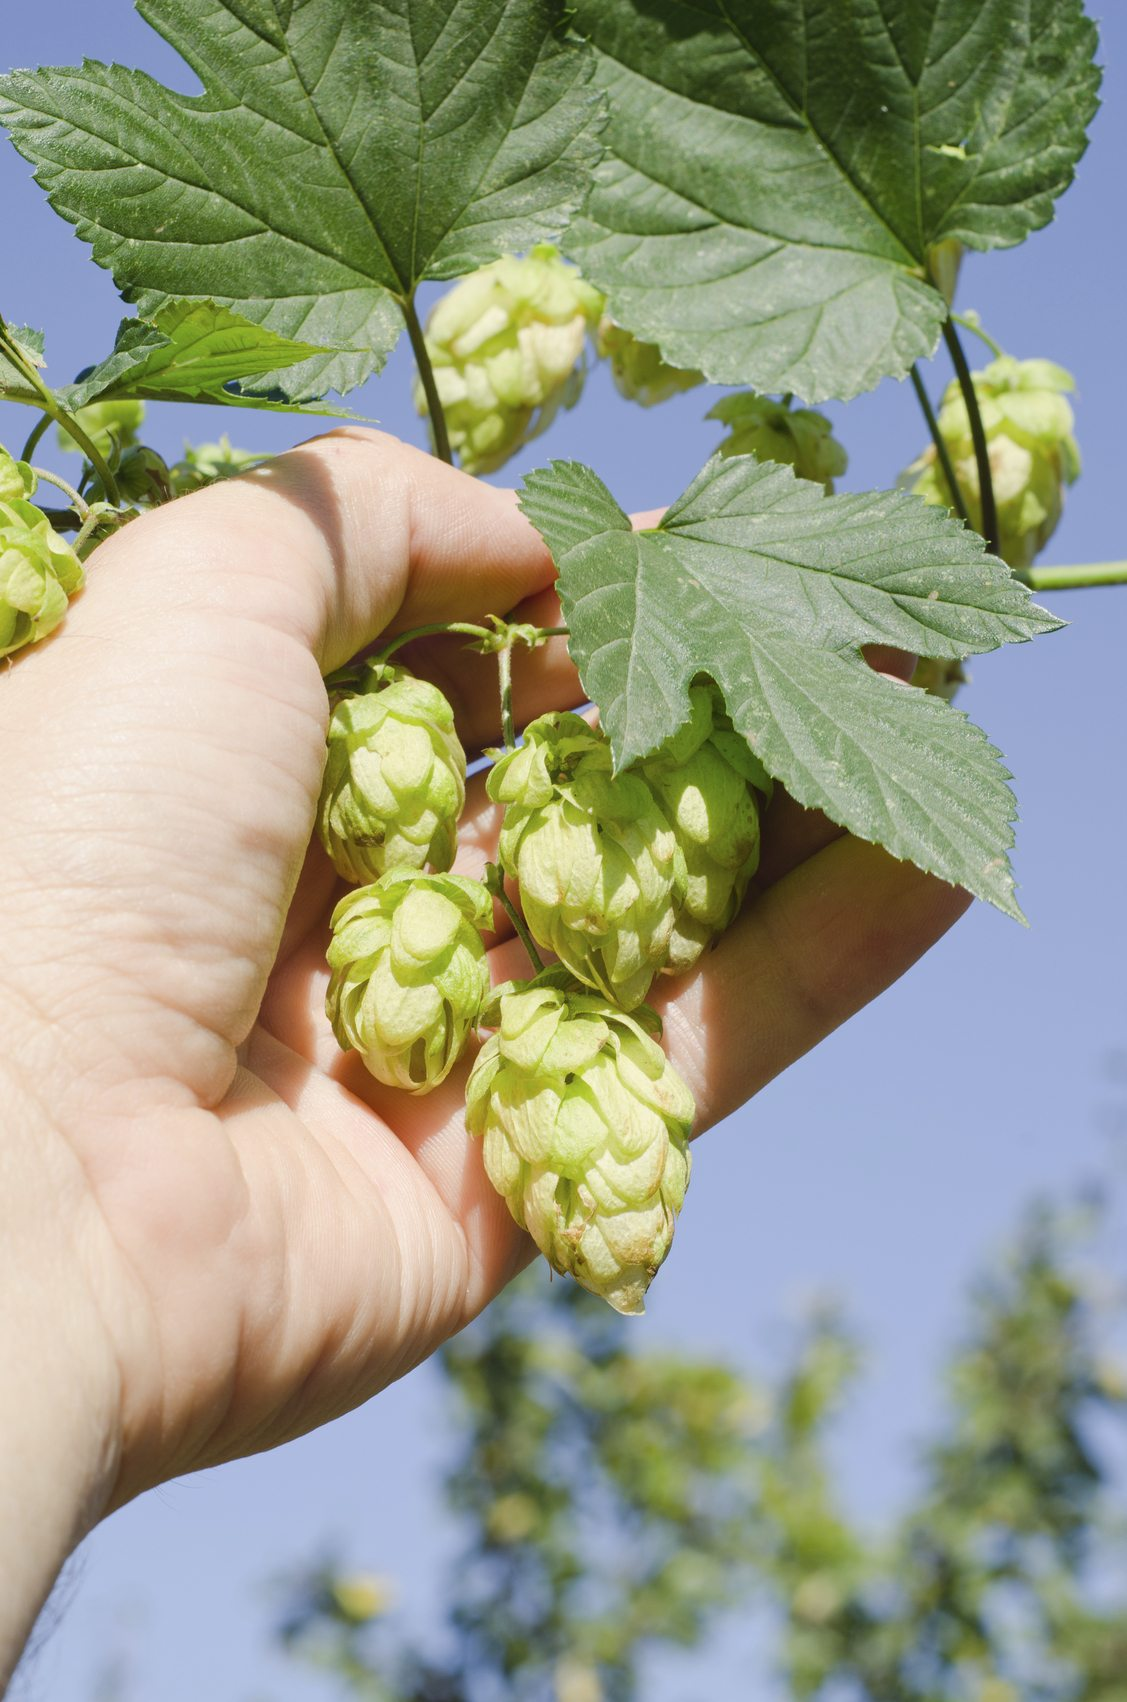 Hops Plant Harvesting  U2013 When And How To Harvest Hops In